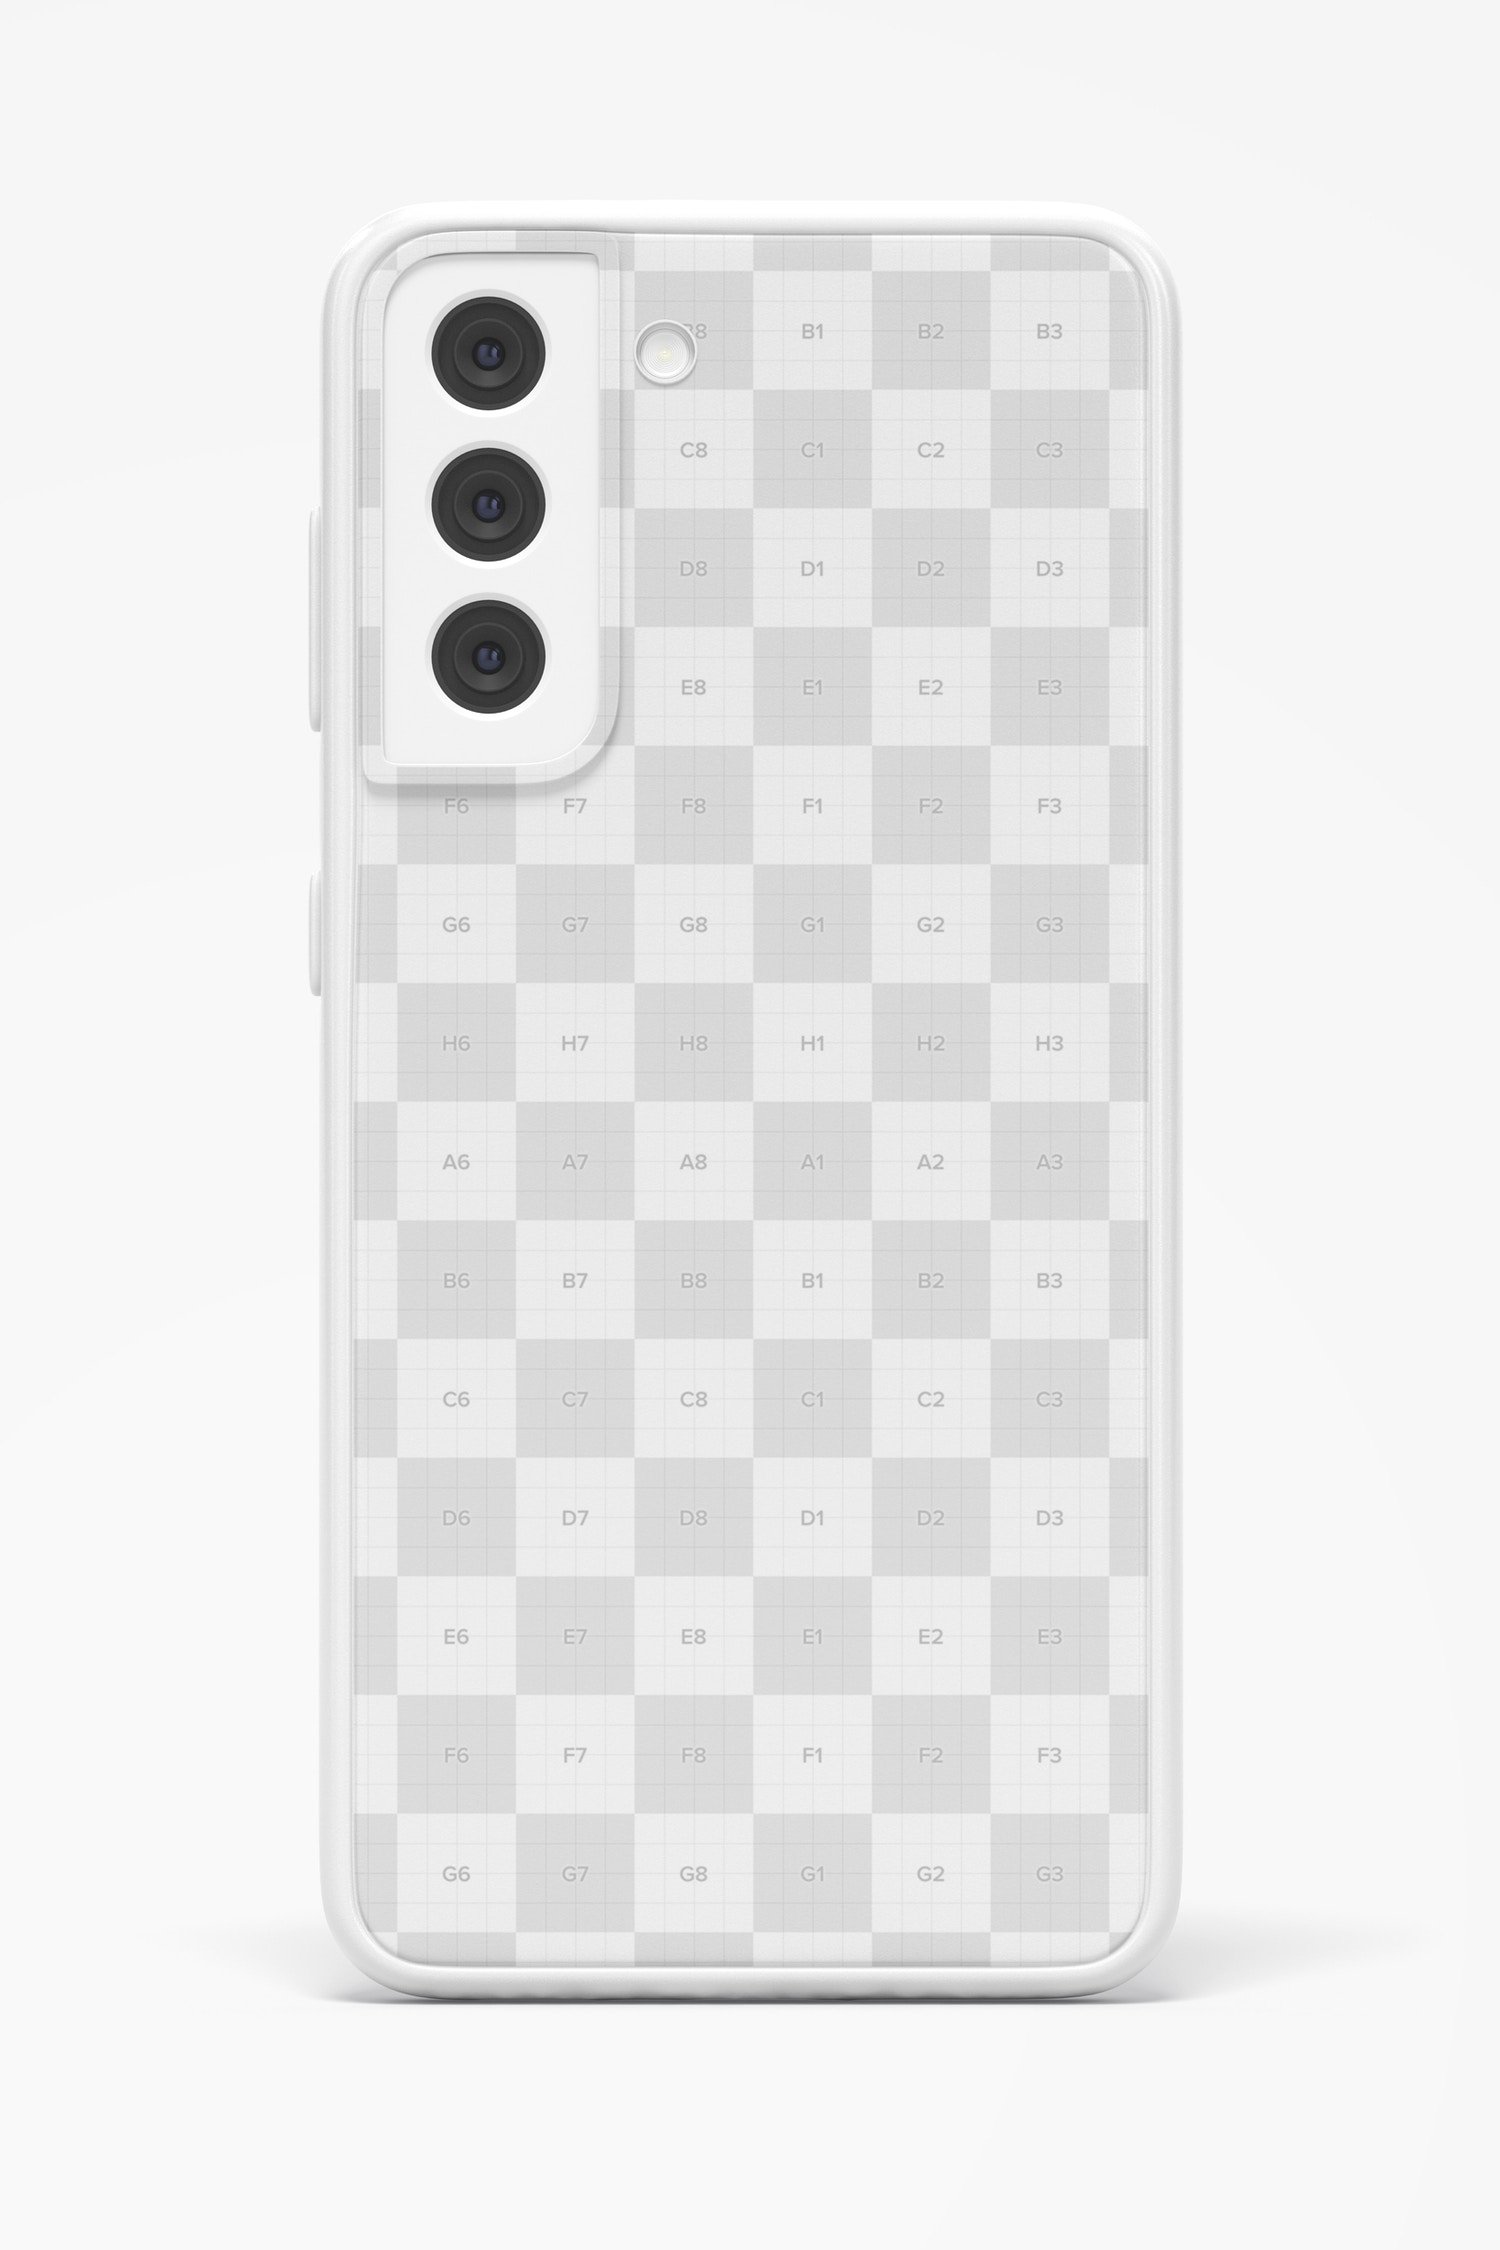 Samsung S21 Case Mockup, Front View